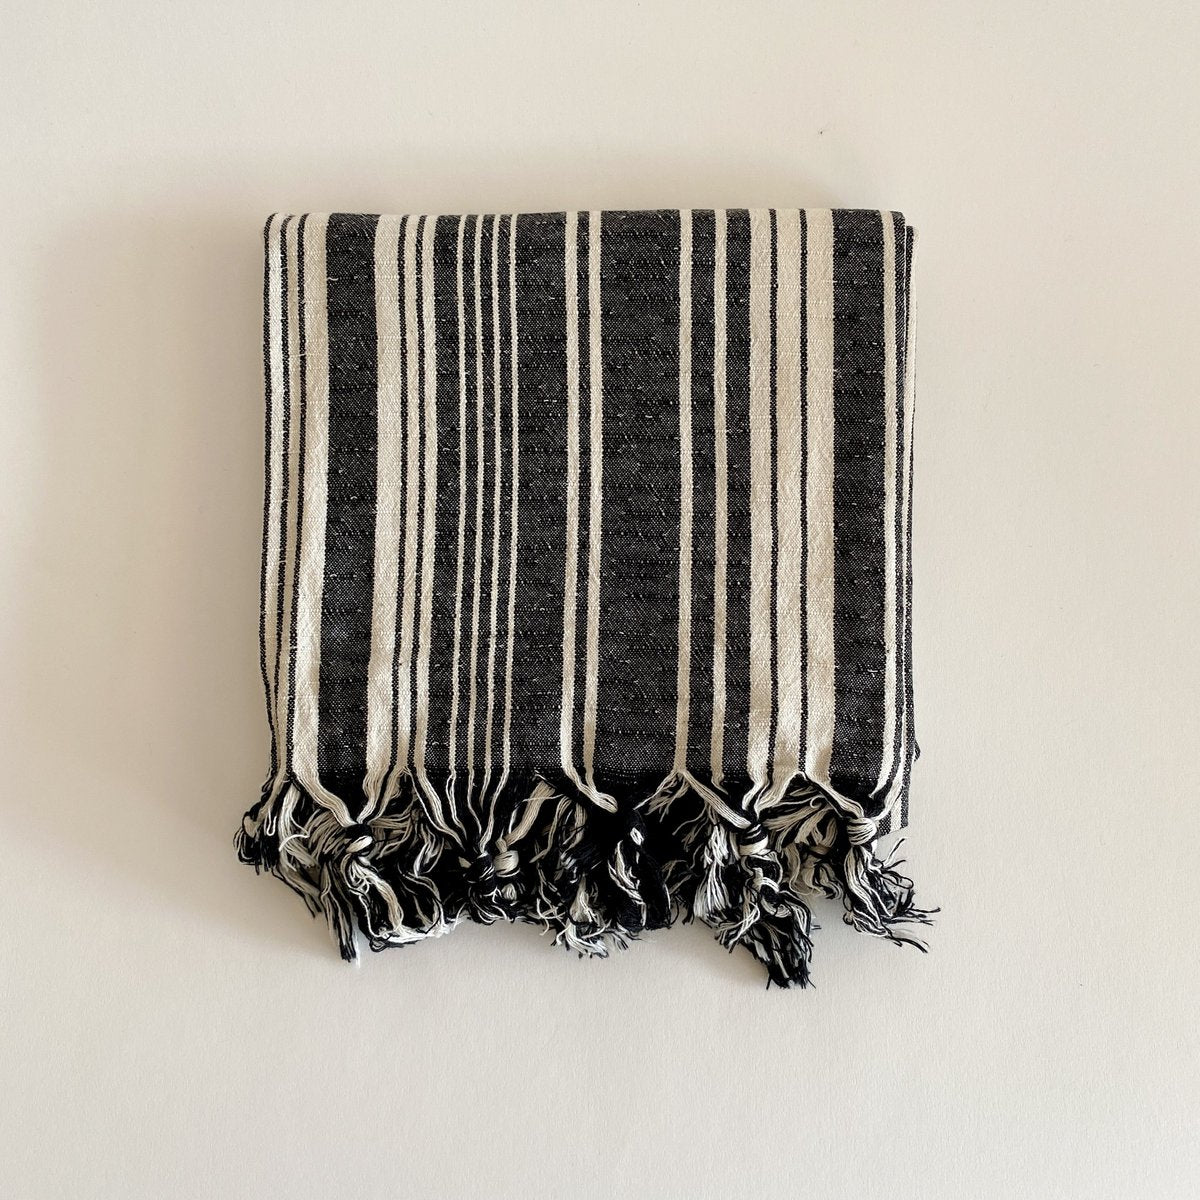 Turkish Towel No. 11